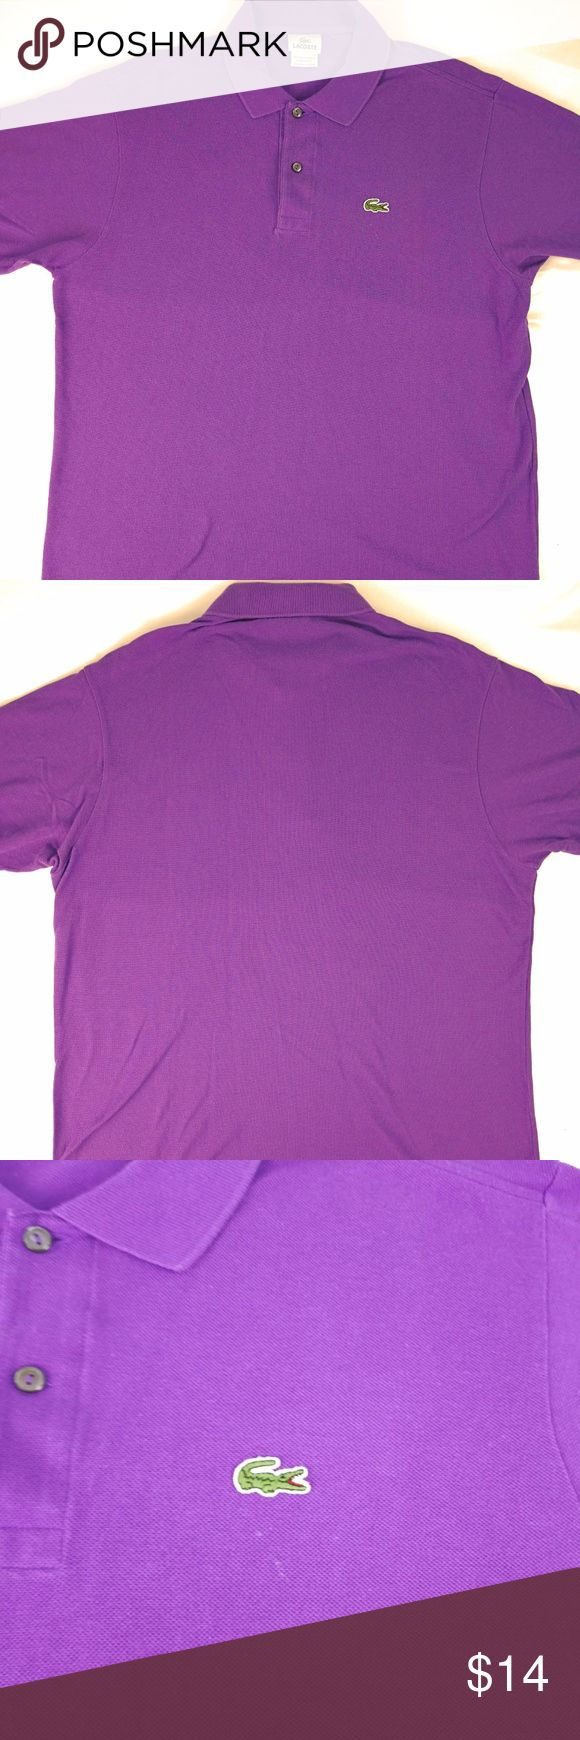 """Lacoste Mens XL 6 Purple Polo Shirt For sale is a polo shirt from Lacoste. Has fade from normal use and wash. The area by the alligator logo has light spots shown in picture 3. Picture 1 and 2 is most accurate in color.   Size: XL/6 Chest: 22"""" pit to pit 44"""" around Length: 27.25"""" measured from below the collar to end of shirt  I will ship your item within 24 hours  Thank you Lacoste Shirts Polos"""